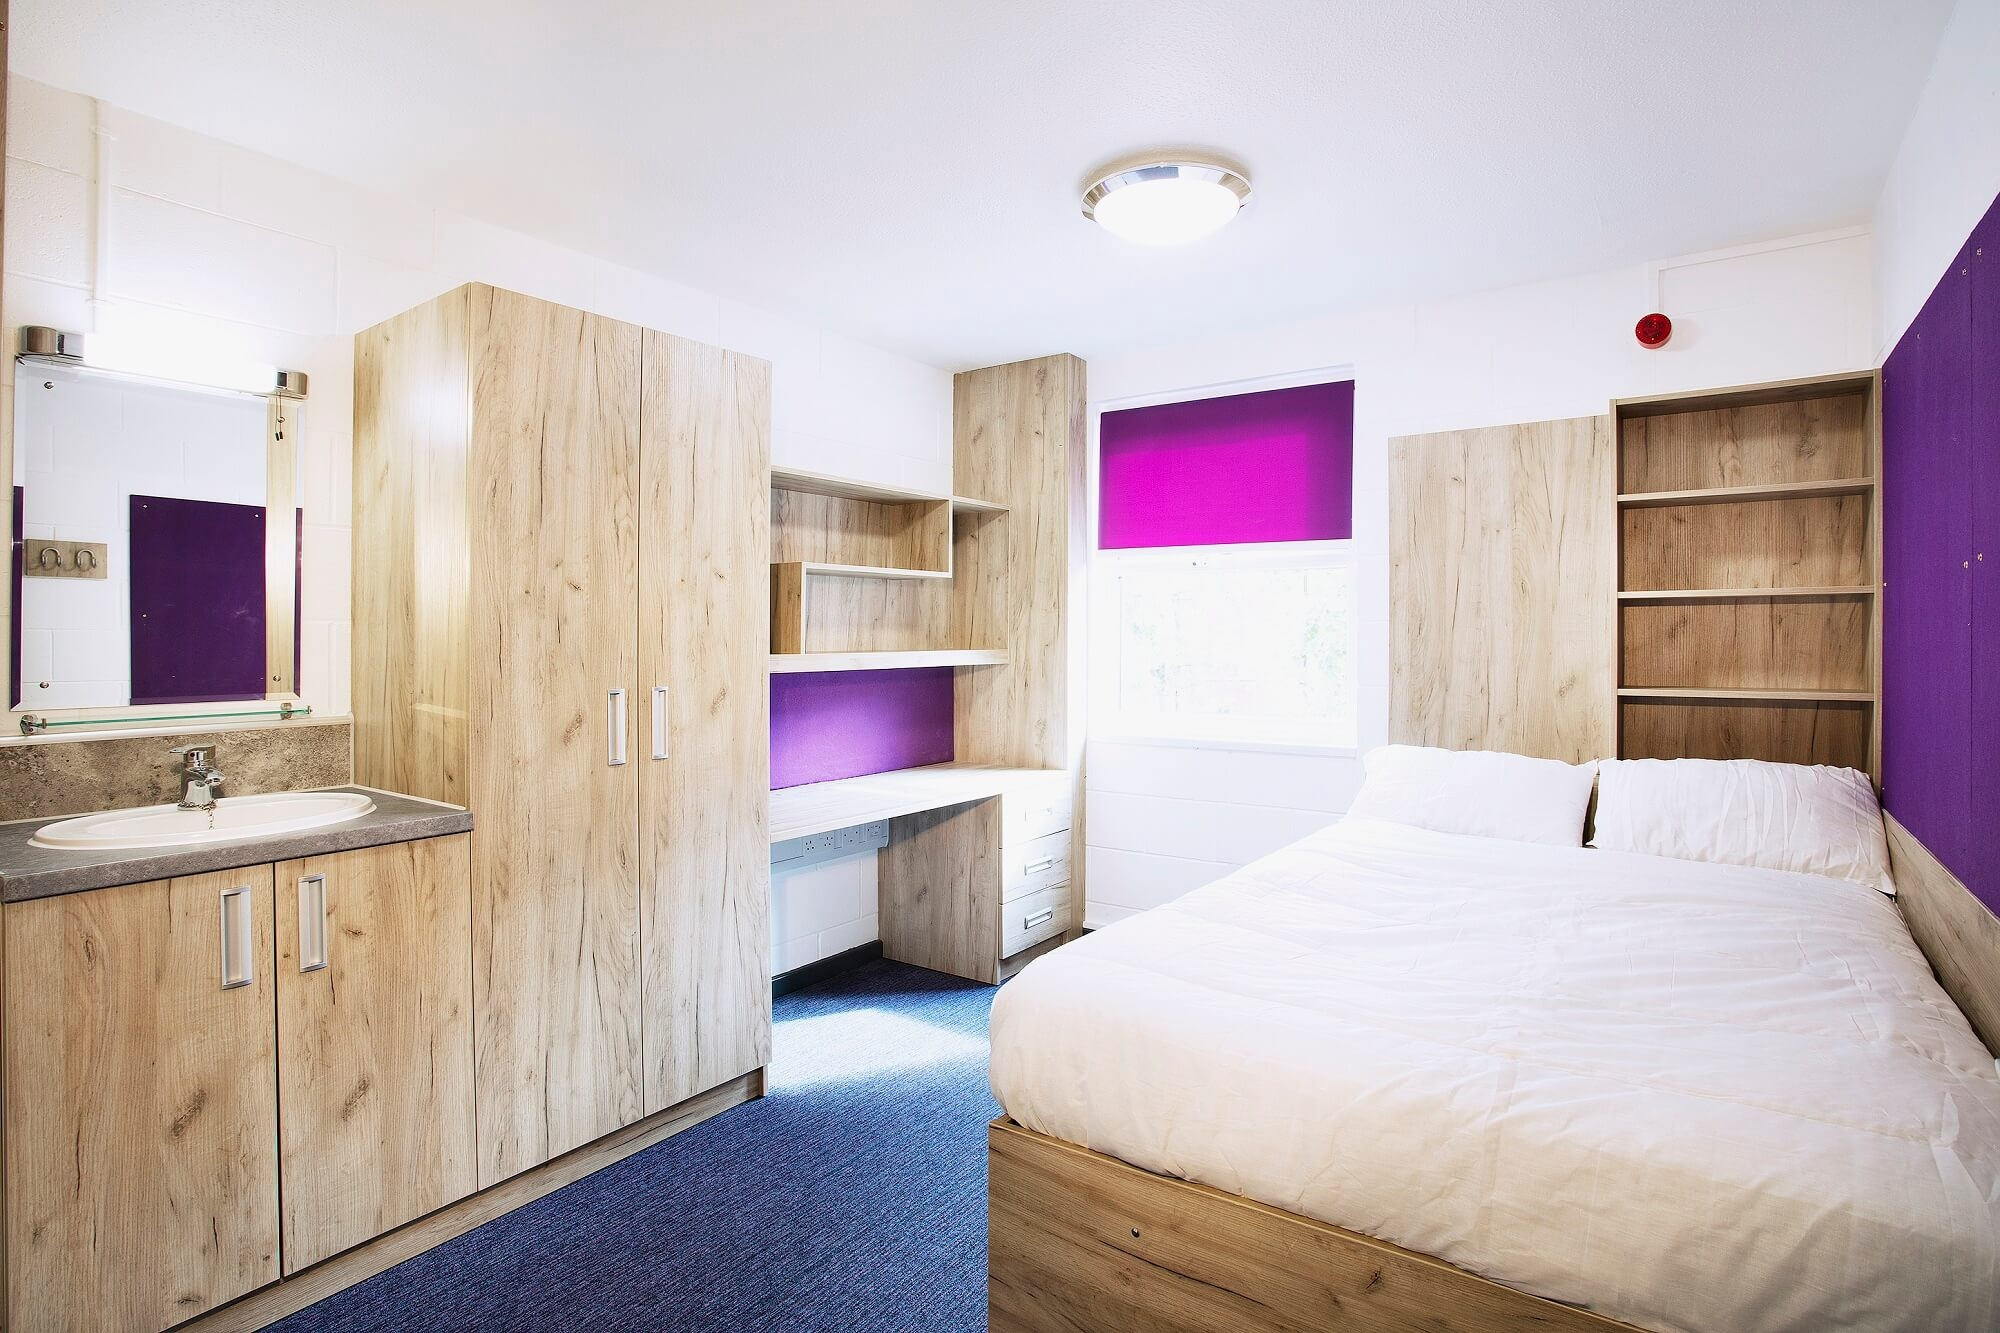 A student accommodation room